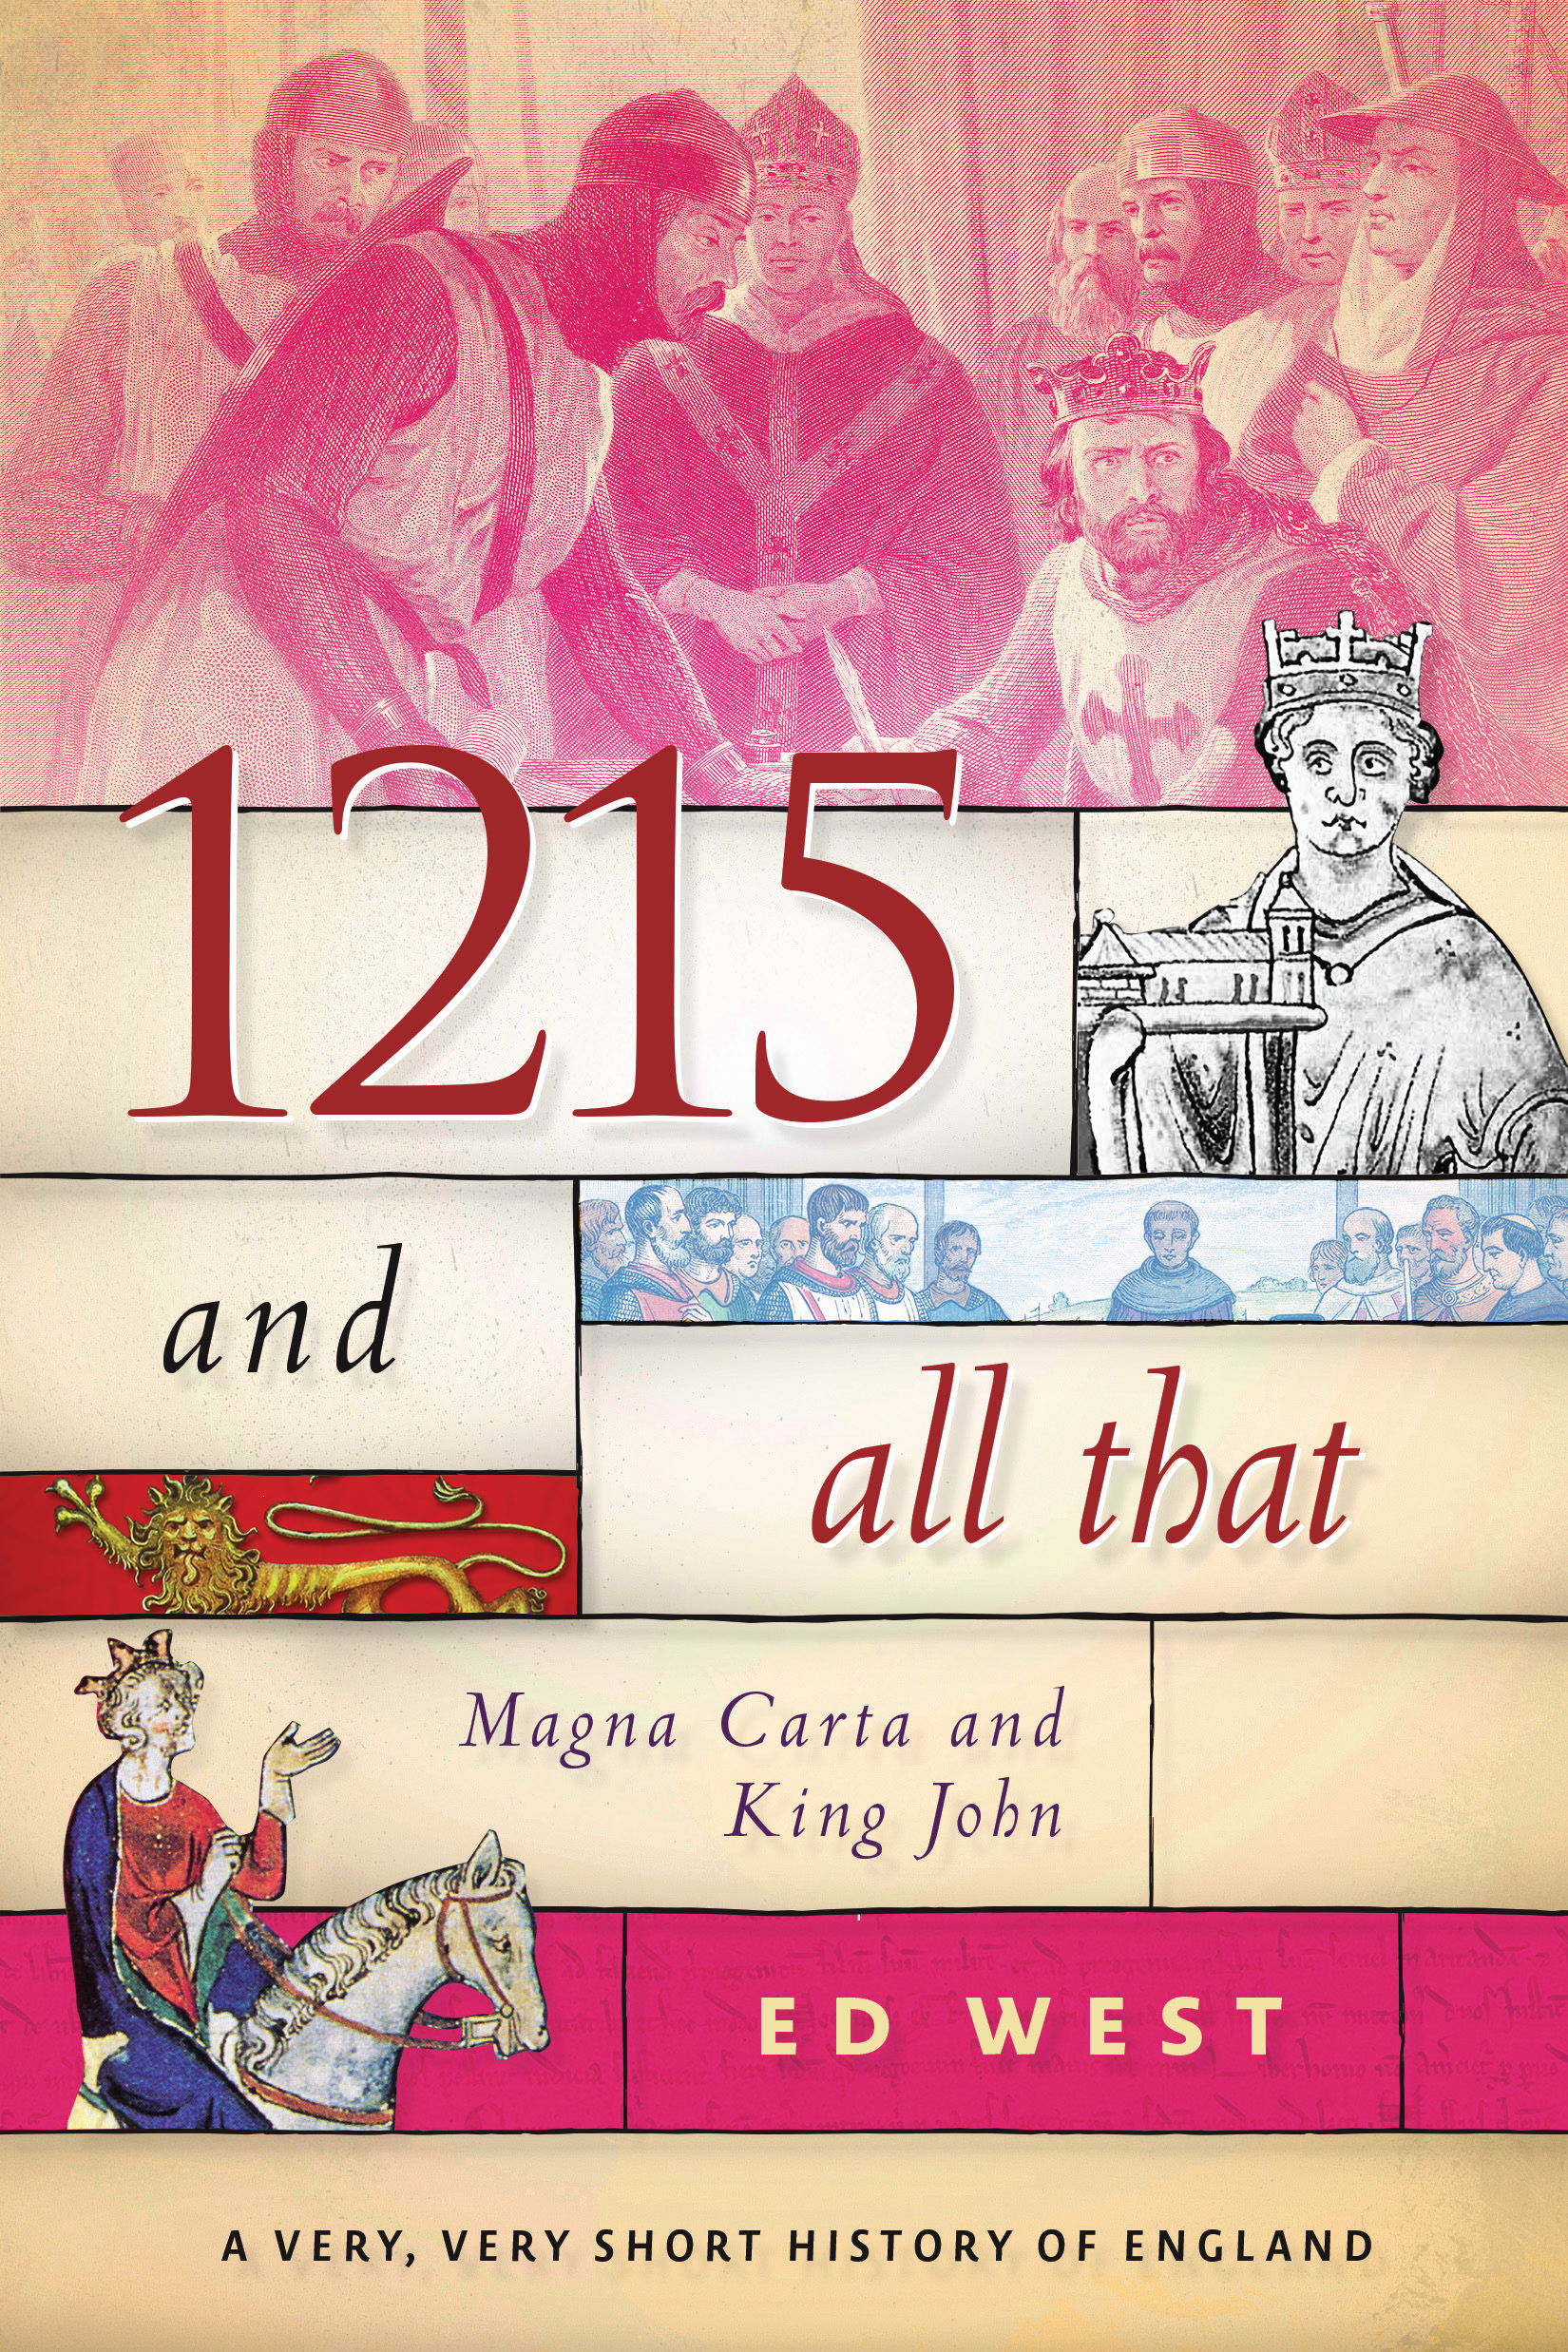 1215 and All That: The Magna Carta and King John